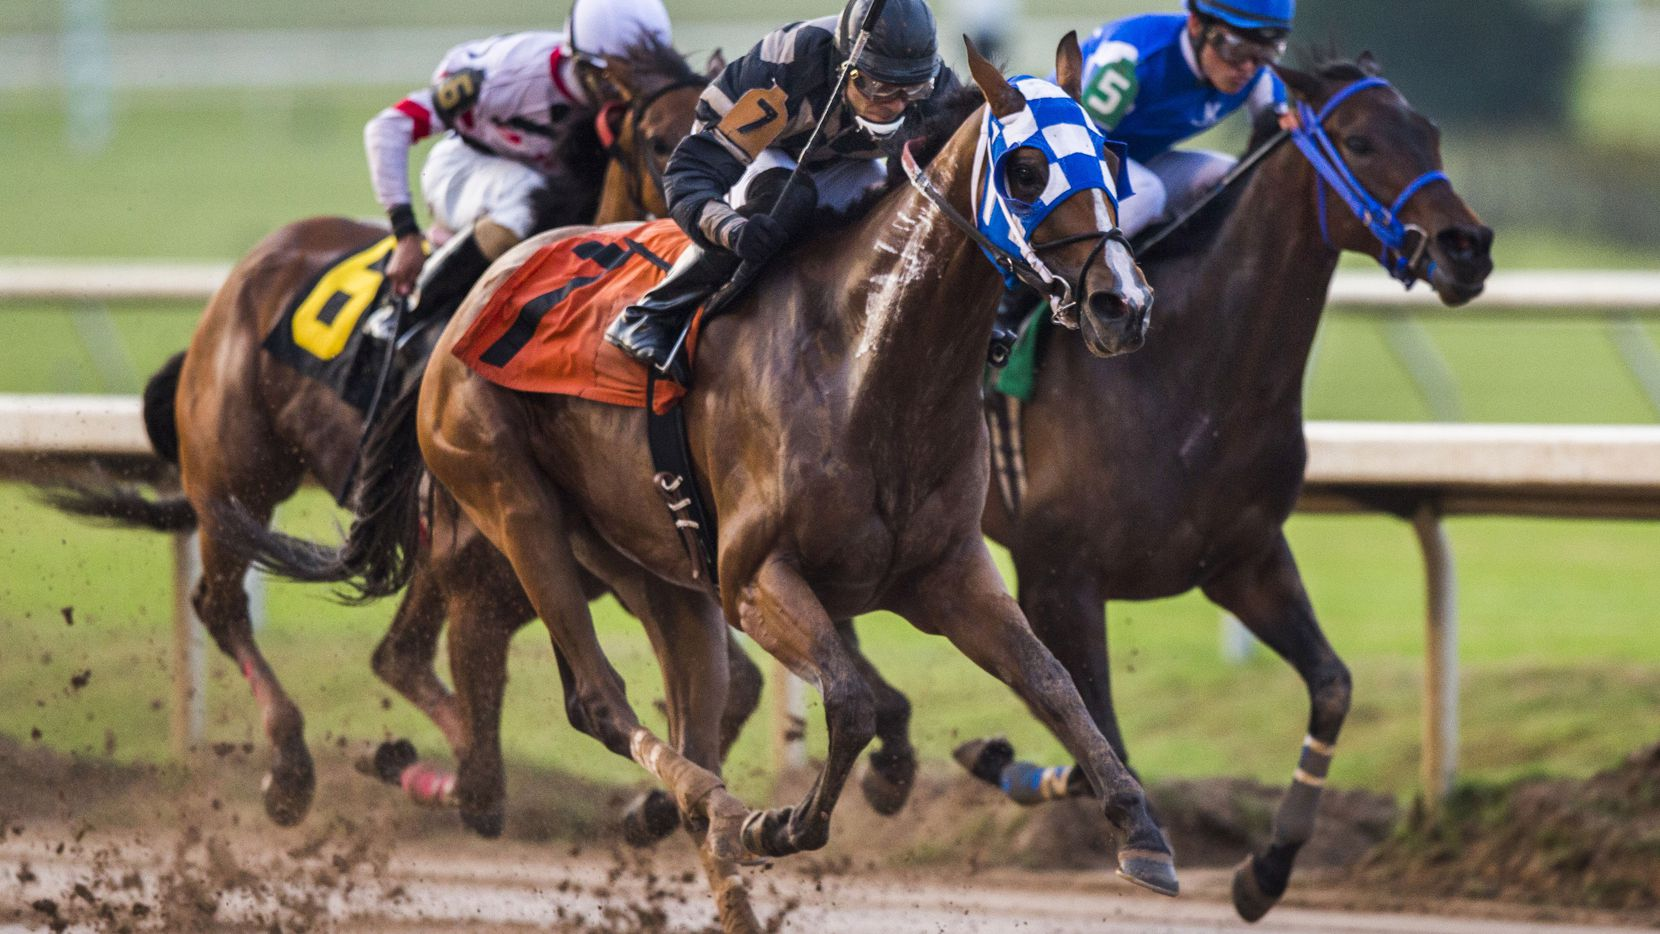 Jockey Domingo Chacaltana on Dixieland Paradise (7) pulls ahead of jockey David Cabrera on Sensational Appeal (5) and jockey C.J. McMahon on Expand the Moment (6) during race 3 on Thursday, April 9, 2015 at opening day at Lone Star Park in Grand Prairie, Texas.